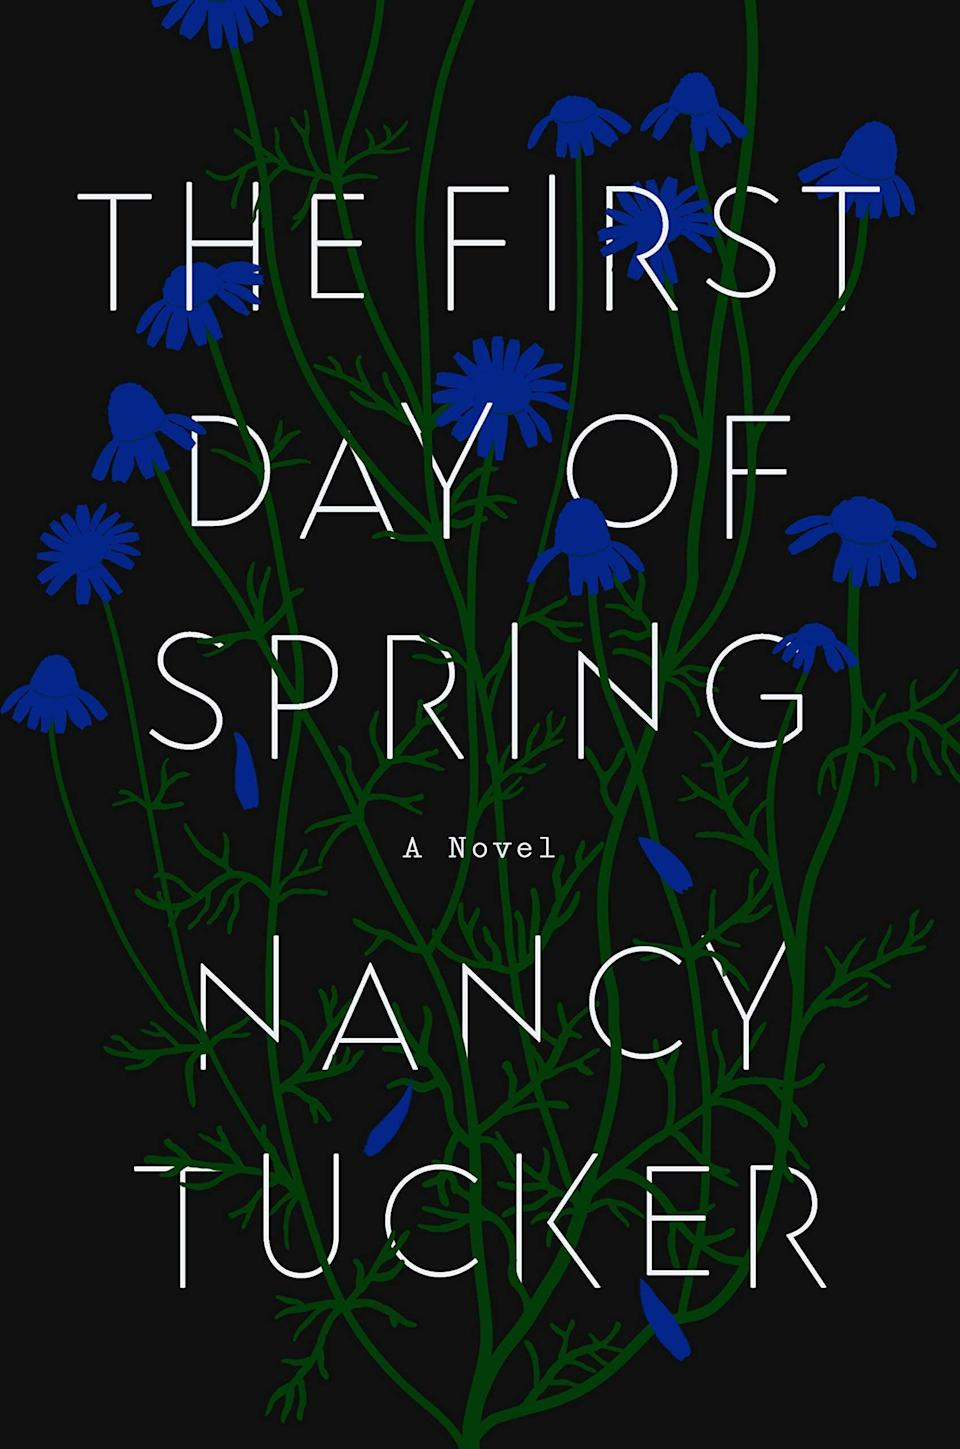 <p><span><strong>The First Day of Spring</strong></span> by Nancy Tucker is a difficult read at times, but this debut is too original to be missed. The story follows a woman named Chrissie, who, at the age of 8, killed one of her playmates. Now, two decades later, she's living under an assumed name in hopes of giving her daughter the childhood she never had, but no matter how far she runs, Chrissie can't escape her past. </p> <p><em>Out May 18</em></p>